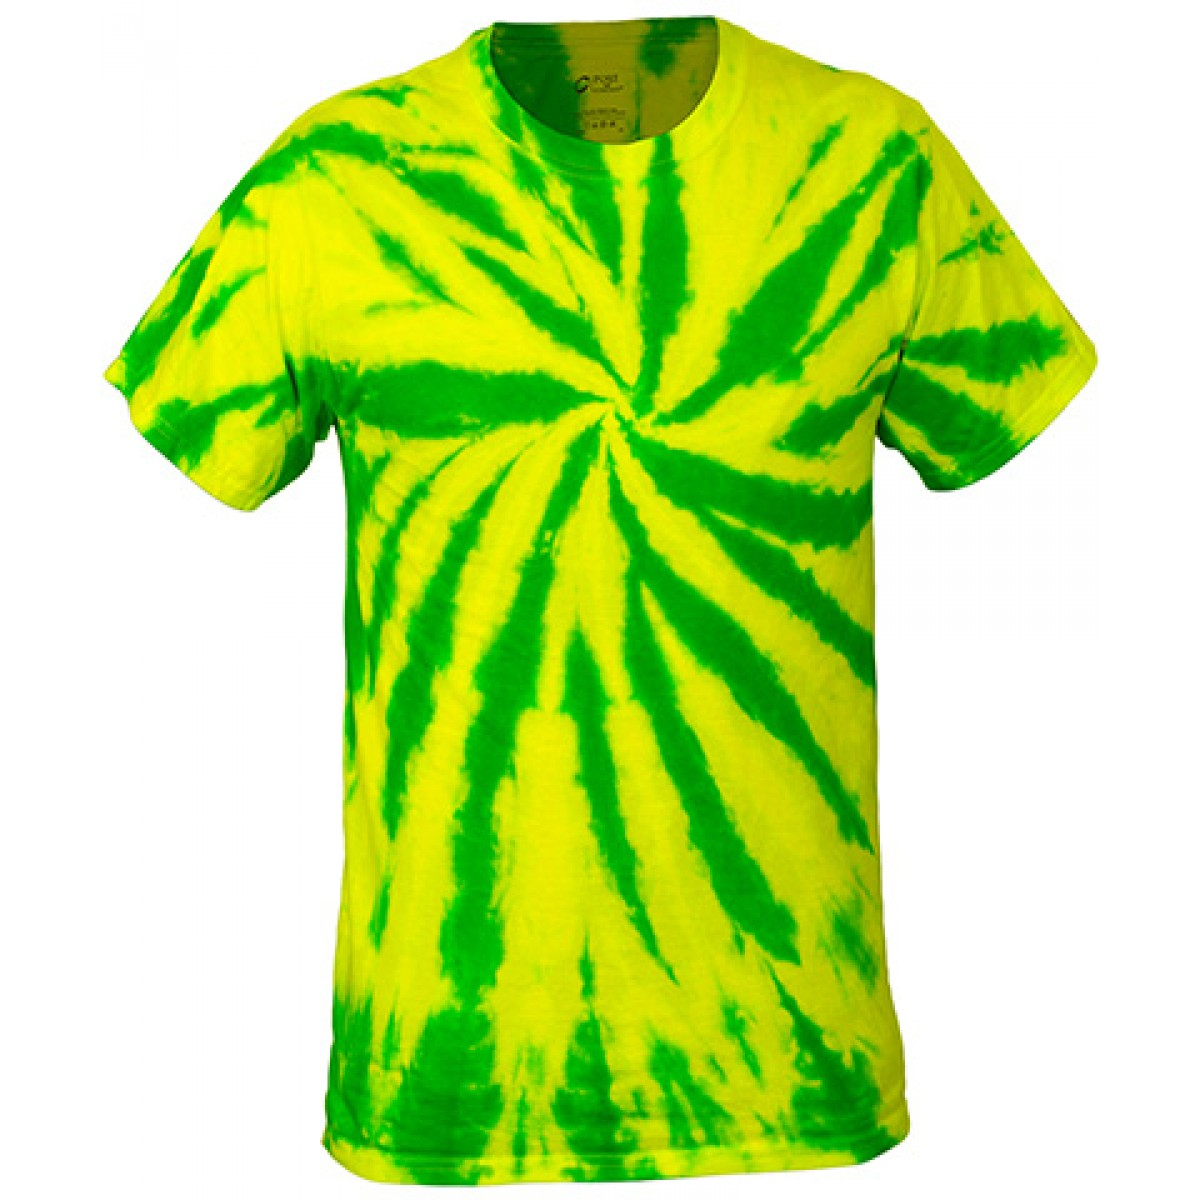 Multi-Color Tie-Dye Tee -Neon Green-2XL